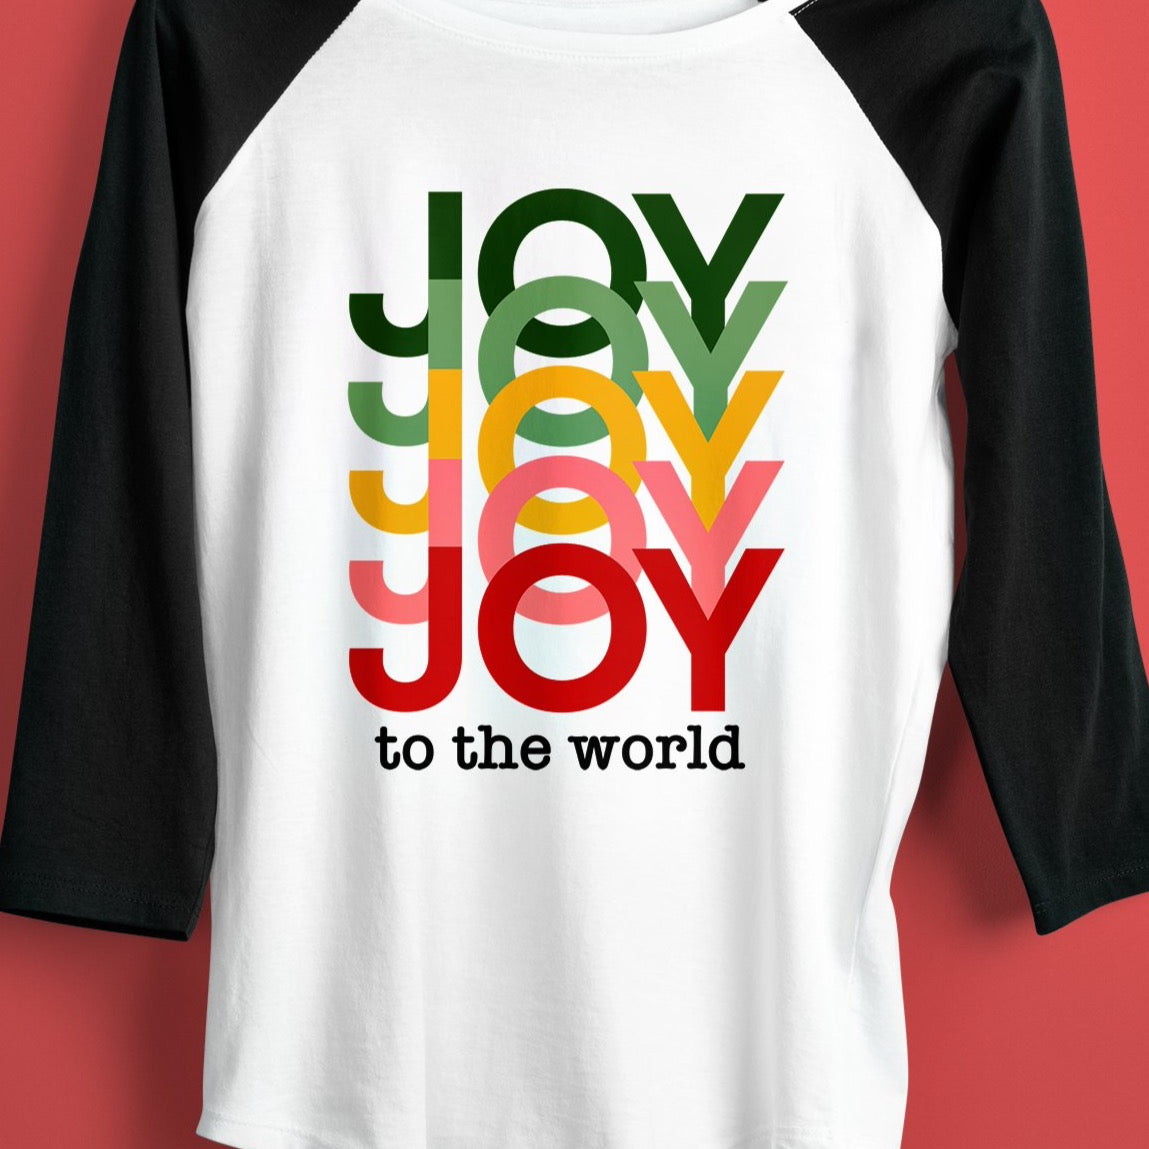 JOY CHRISTMAS SVG, Joy to the World Svg File, Bright Colored Holiday Joy Svg File, Colorful Joy to the World Shirt Svg, Rainbow Joy Svg